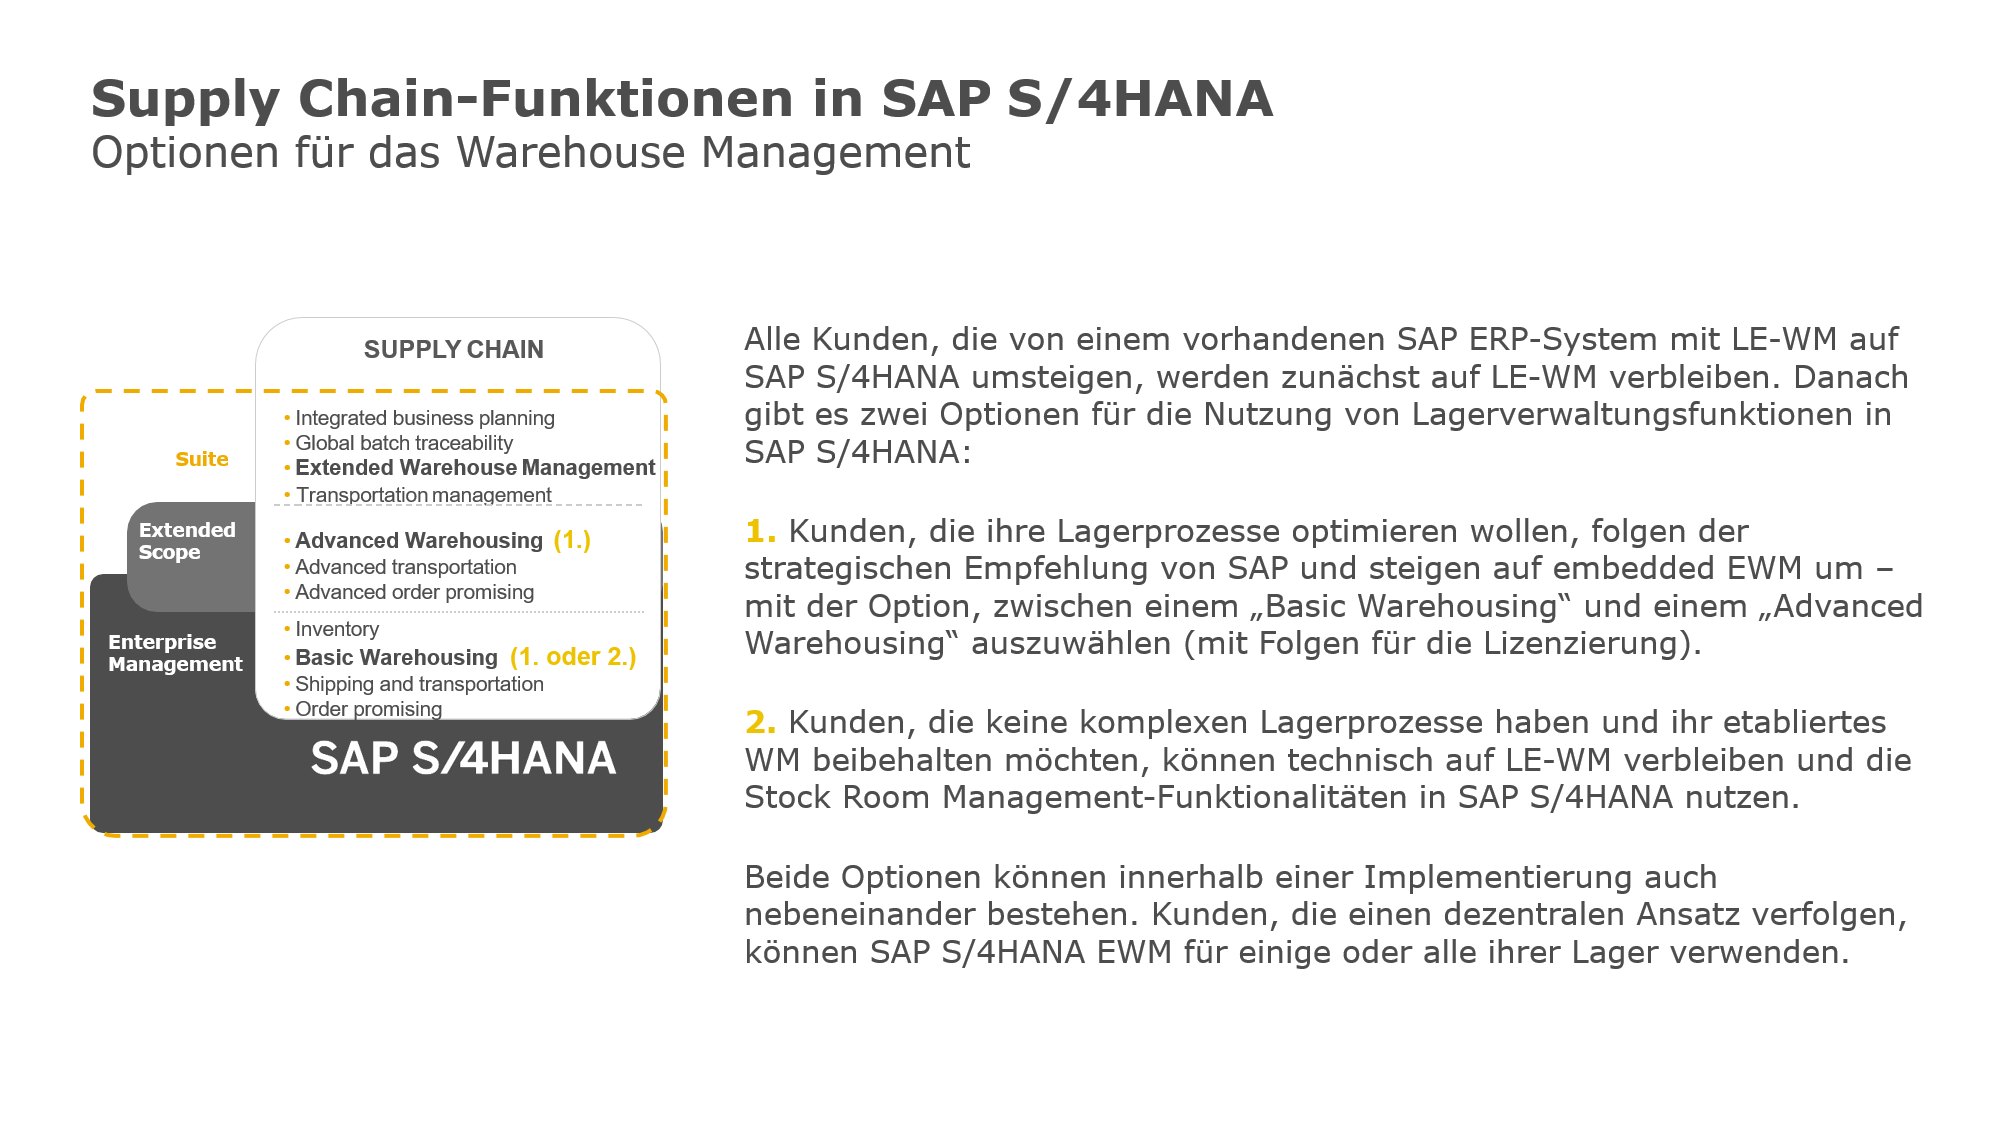 Blog Grafik Supply Chain Funktionen in SAP S4HANA - Warehouse Management ist nun doch unter SAP S/4HANA verfügbar